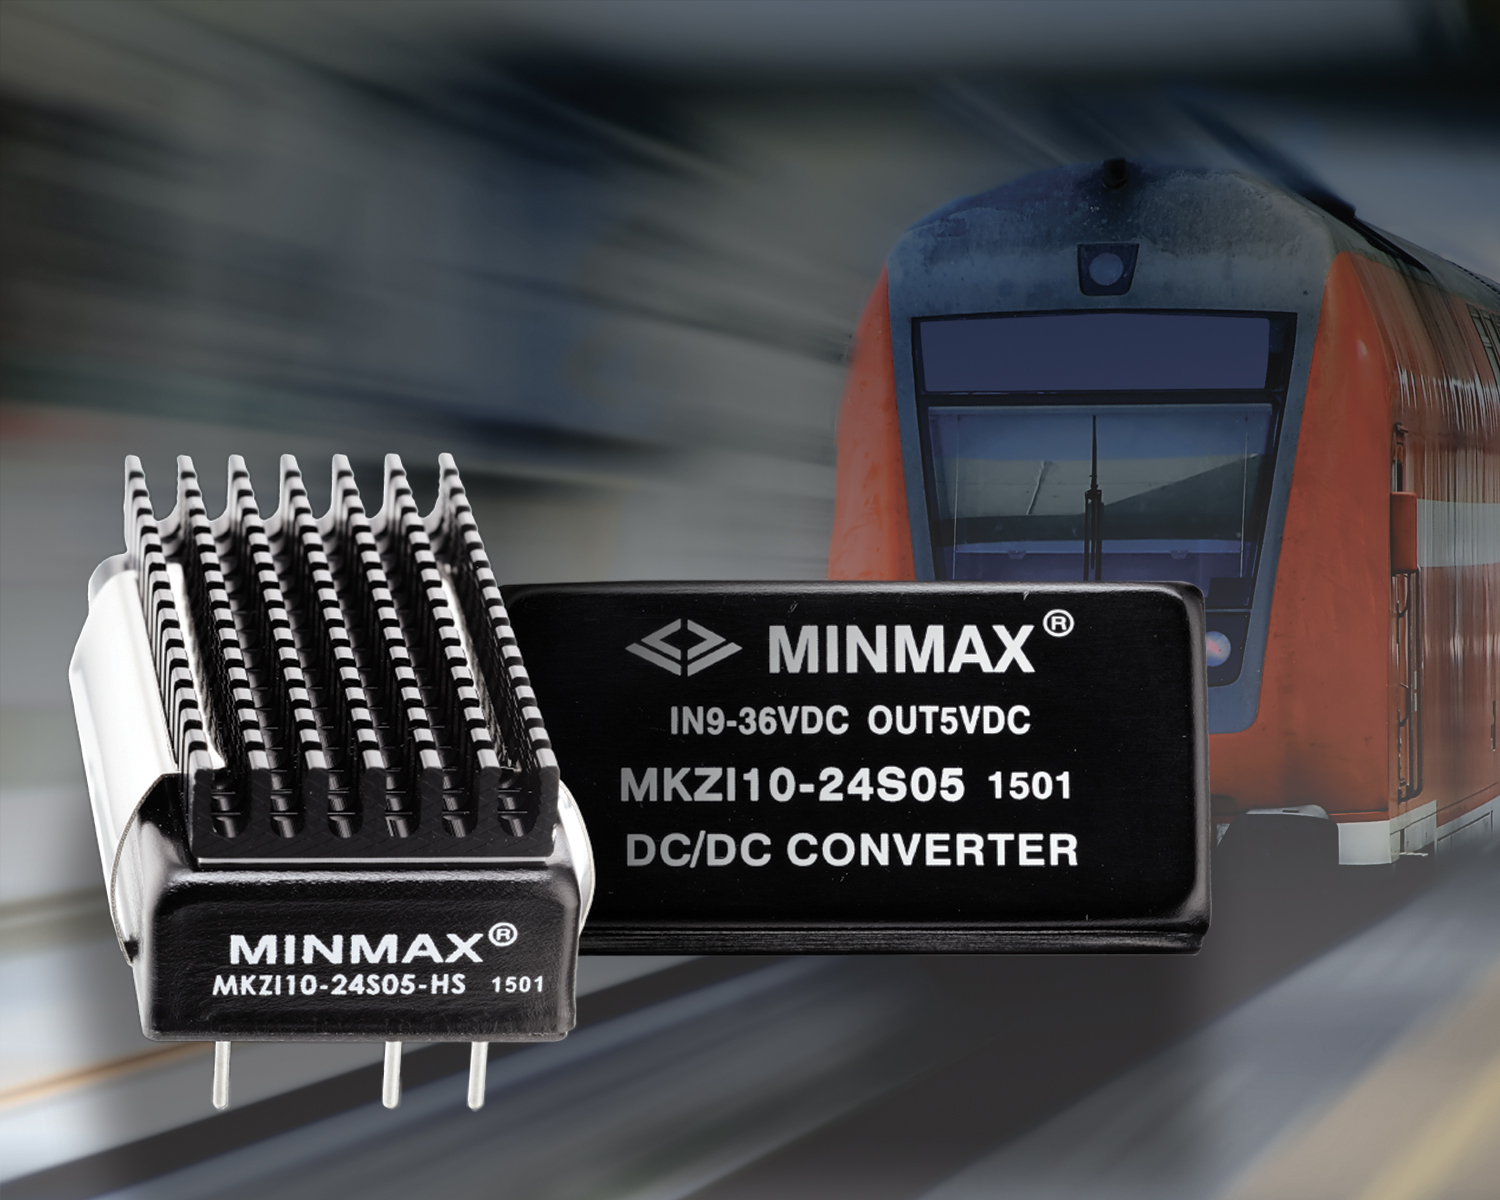 10 Watt Converters Intended for Railway Applications and Battery Powered Equipment